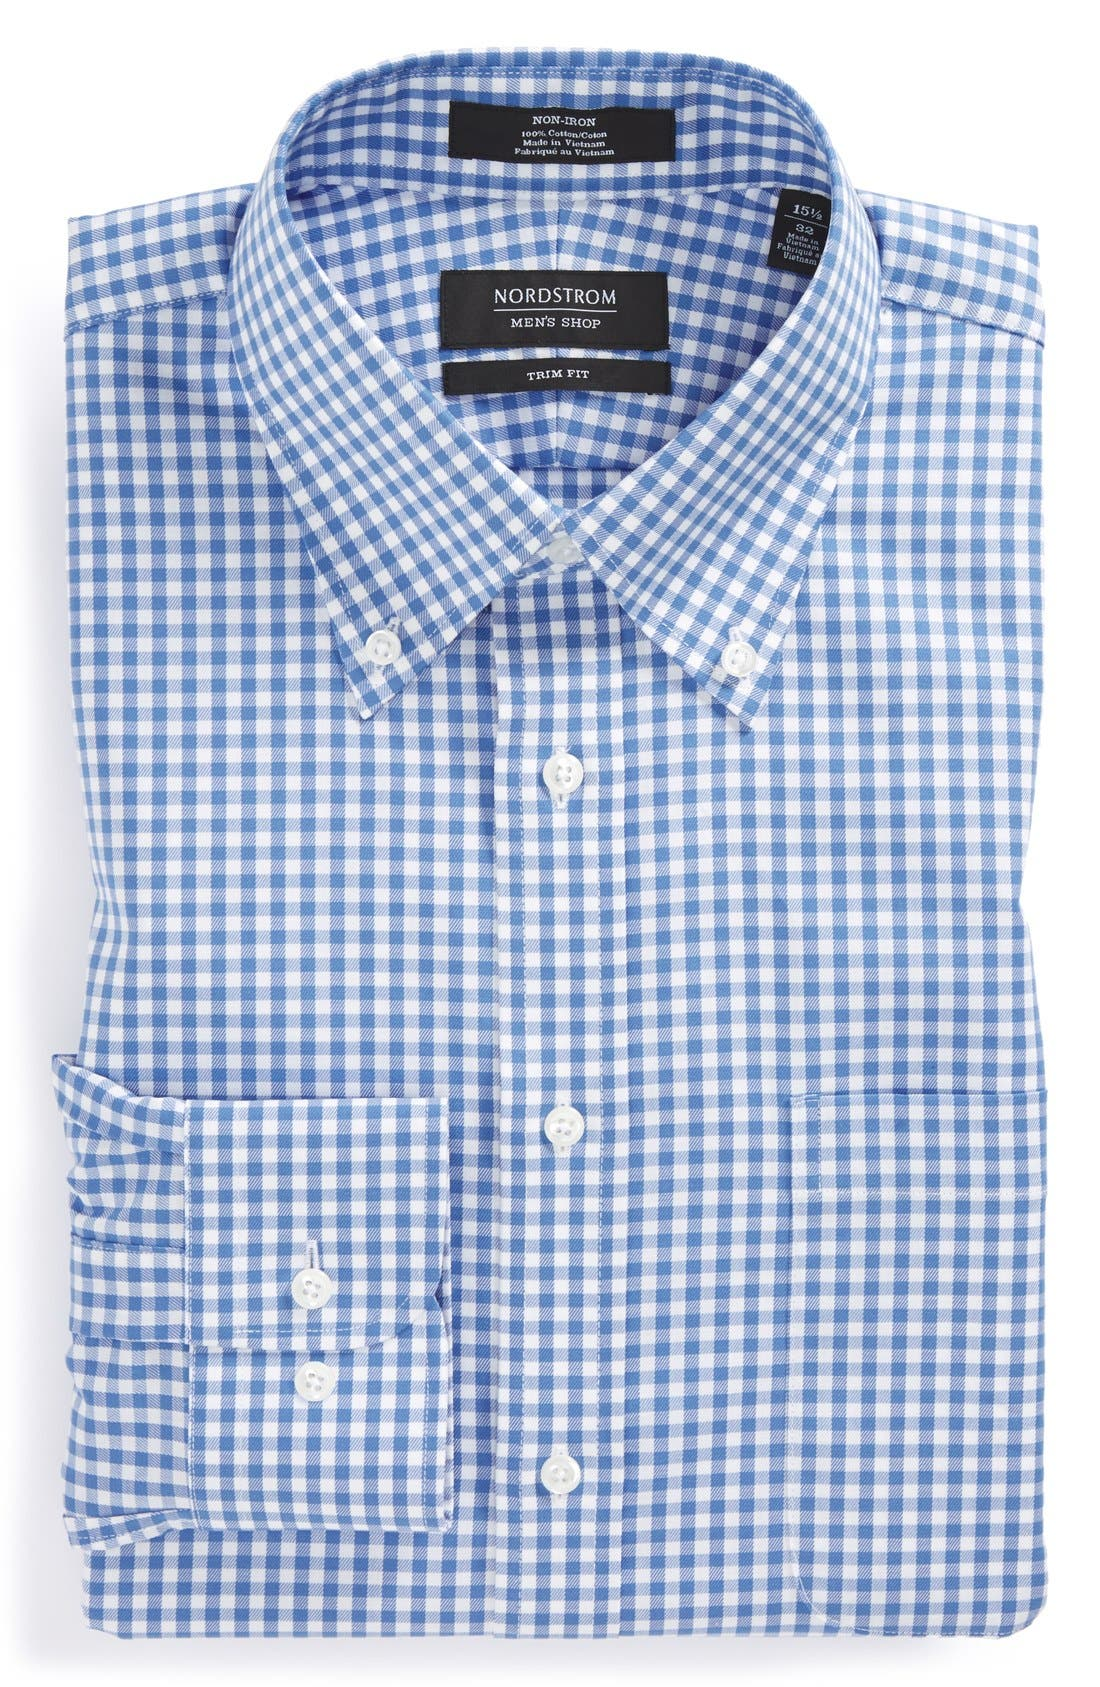 Nordstrom Men's Shop Trim Fit Non-Iron Gingham Dress Shirt